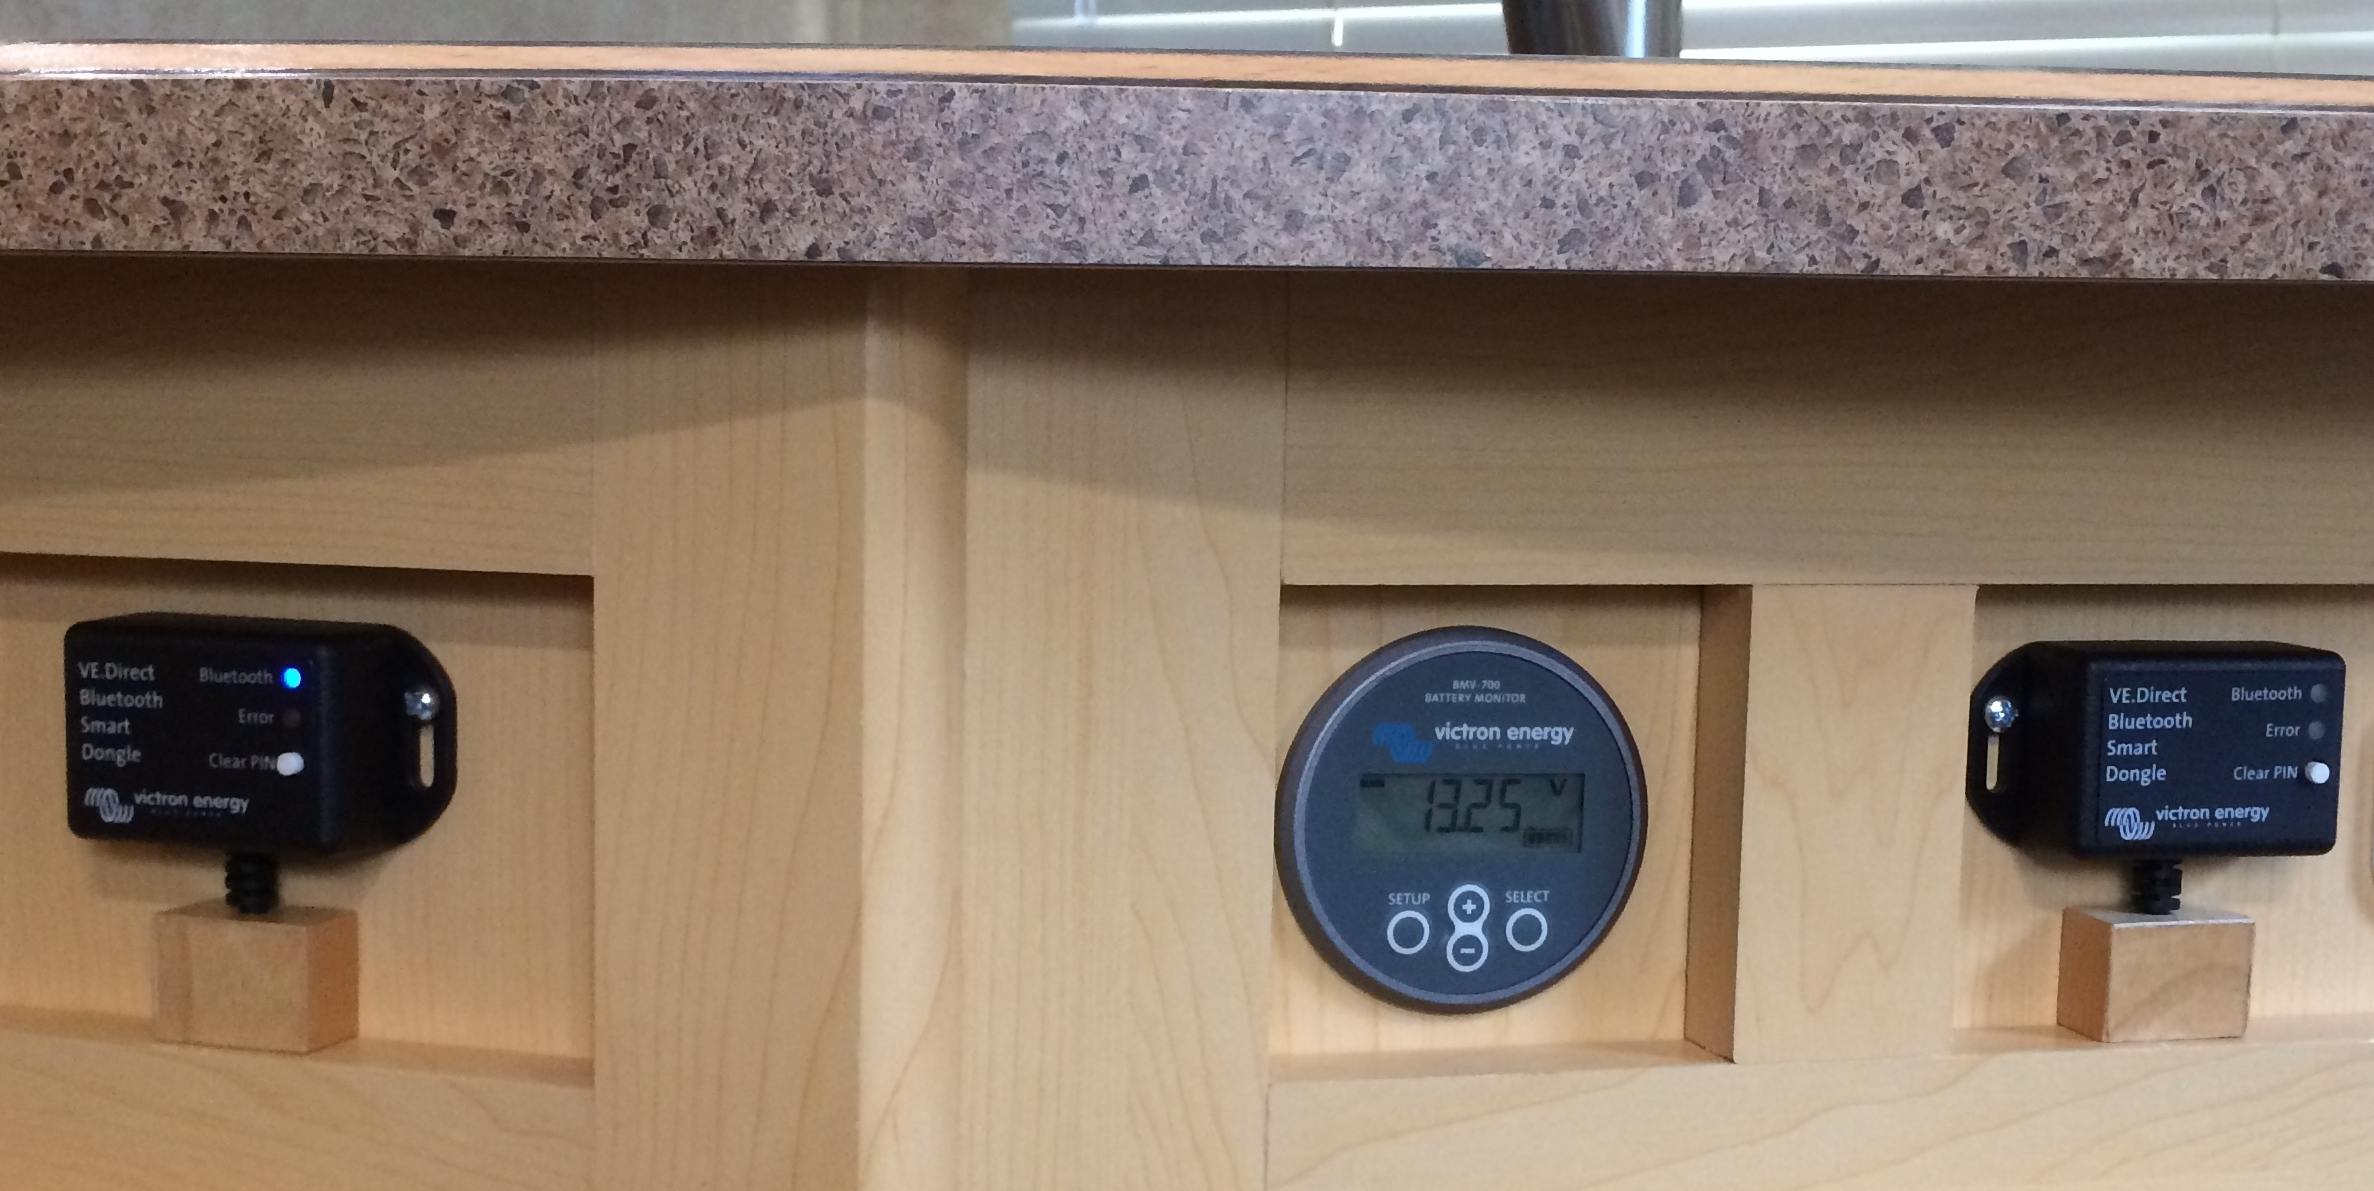 Review Of Victron Battery Monitor And Mppt Controller With Smart Wiring Schematic Moreover Solar Charge I Mounted Both Bluetooth Dongles The In A Trim Space Below My Kitchen Countertop Front Sink Transmission Is